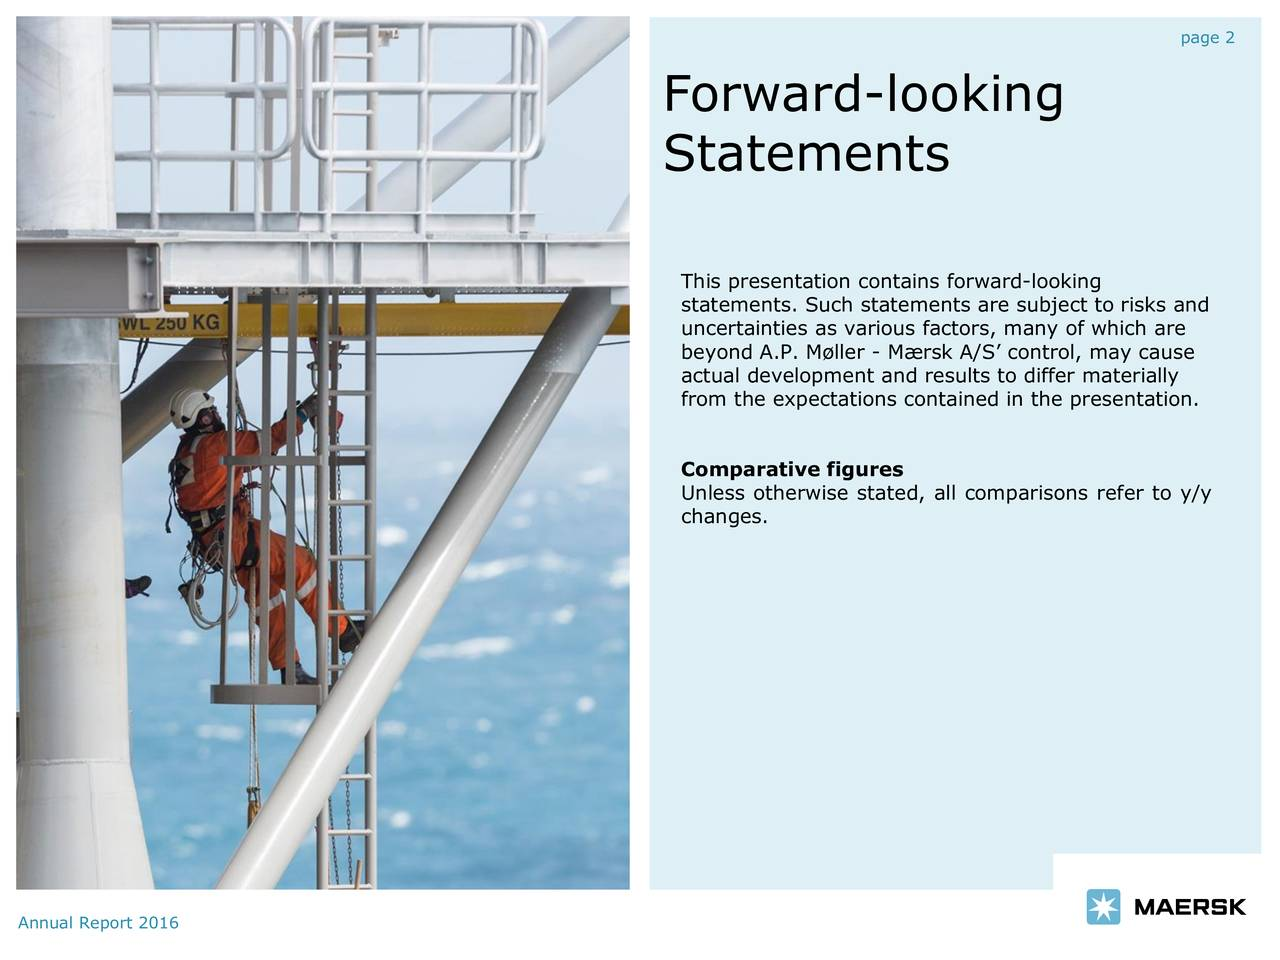 Forward-looking Statements This presentation contains forward-looking statements. Such statements are subject to risks and uncertainties as various factors, many of which are beyond A.P. Mller - Mrsk A/S control, may cause actual development and results to differ materially from the expectations contained in the presentation. Comparative figures Unless otherwise stated, all comparisons refer to y/y changes. Annual Report 2016